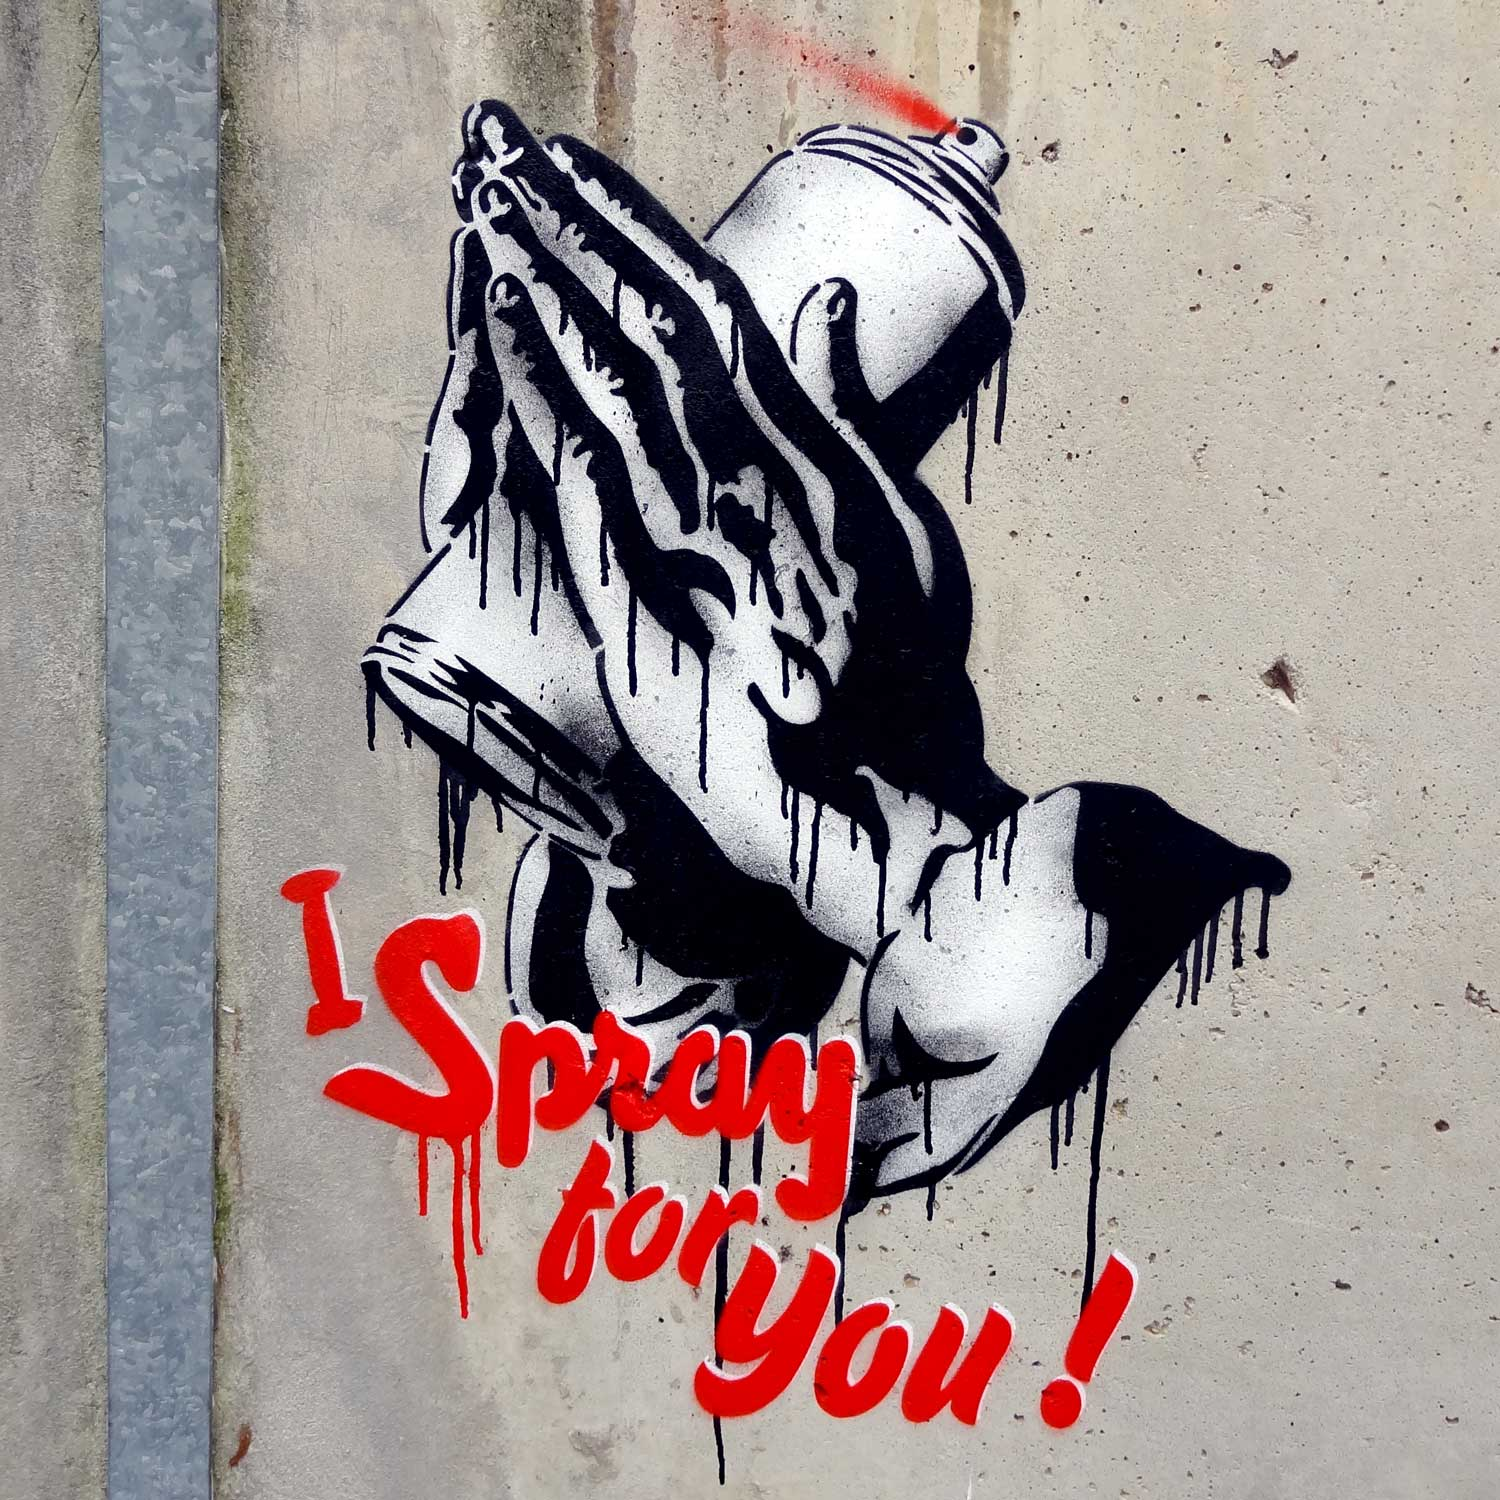 Goin - I SPRAY FOR YOU - Grenoble - France 2014